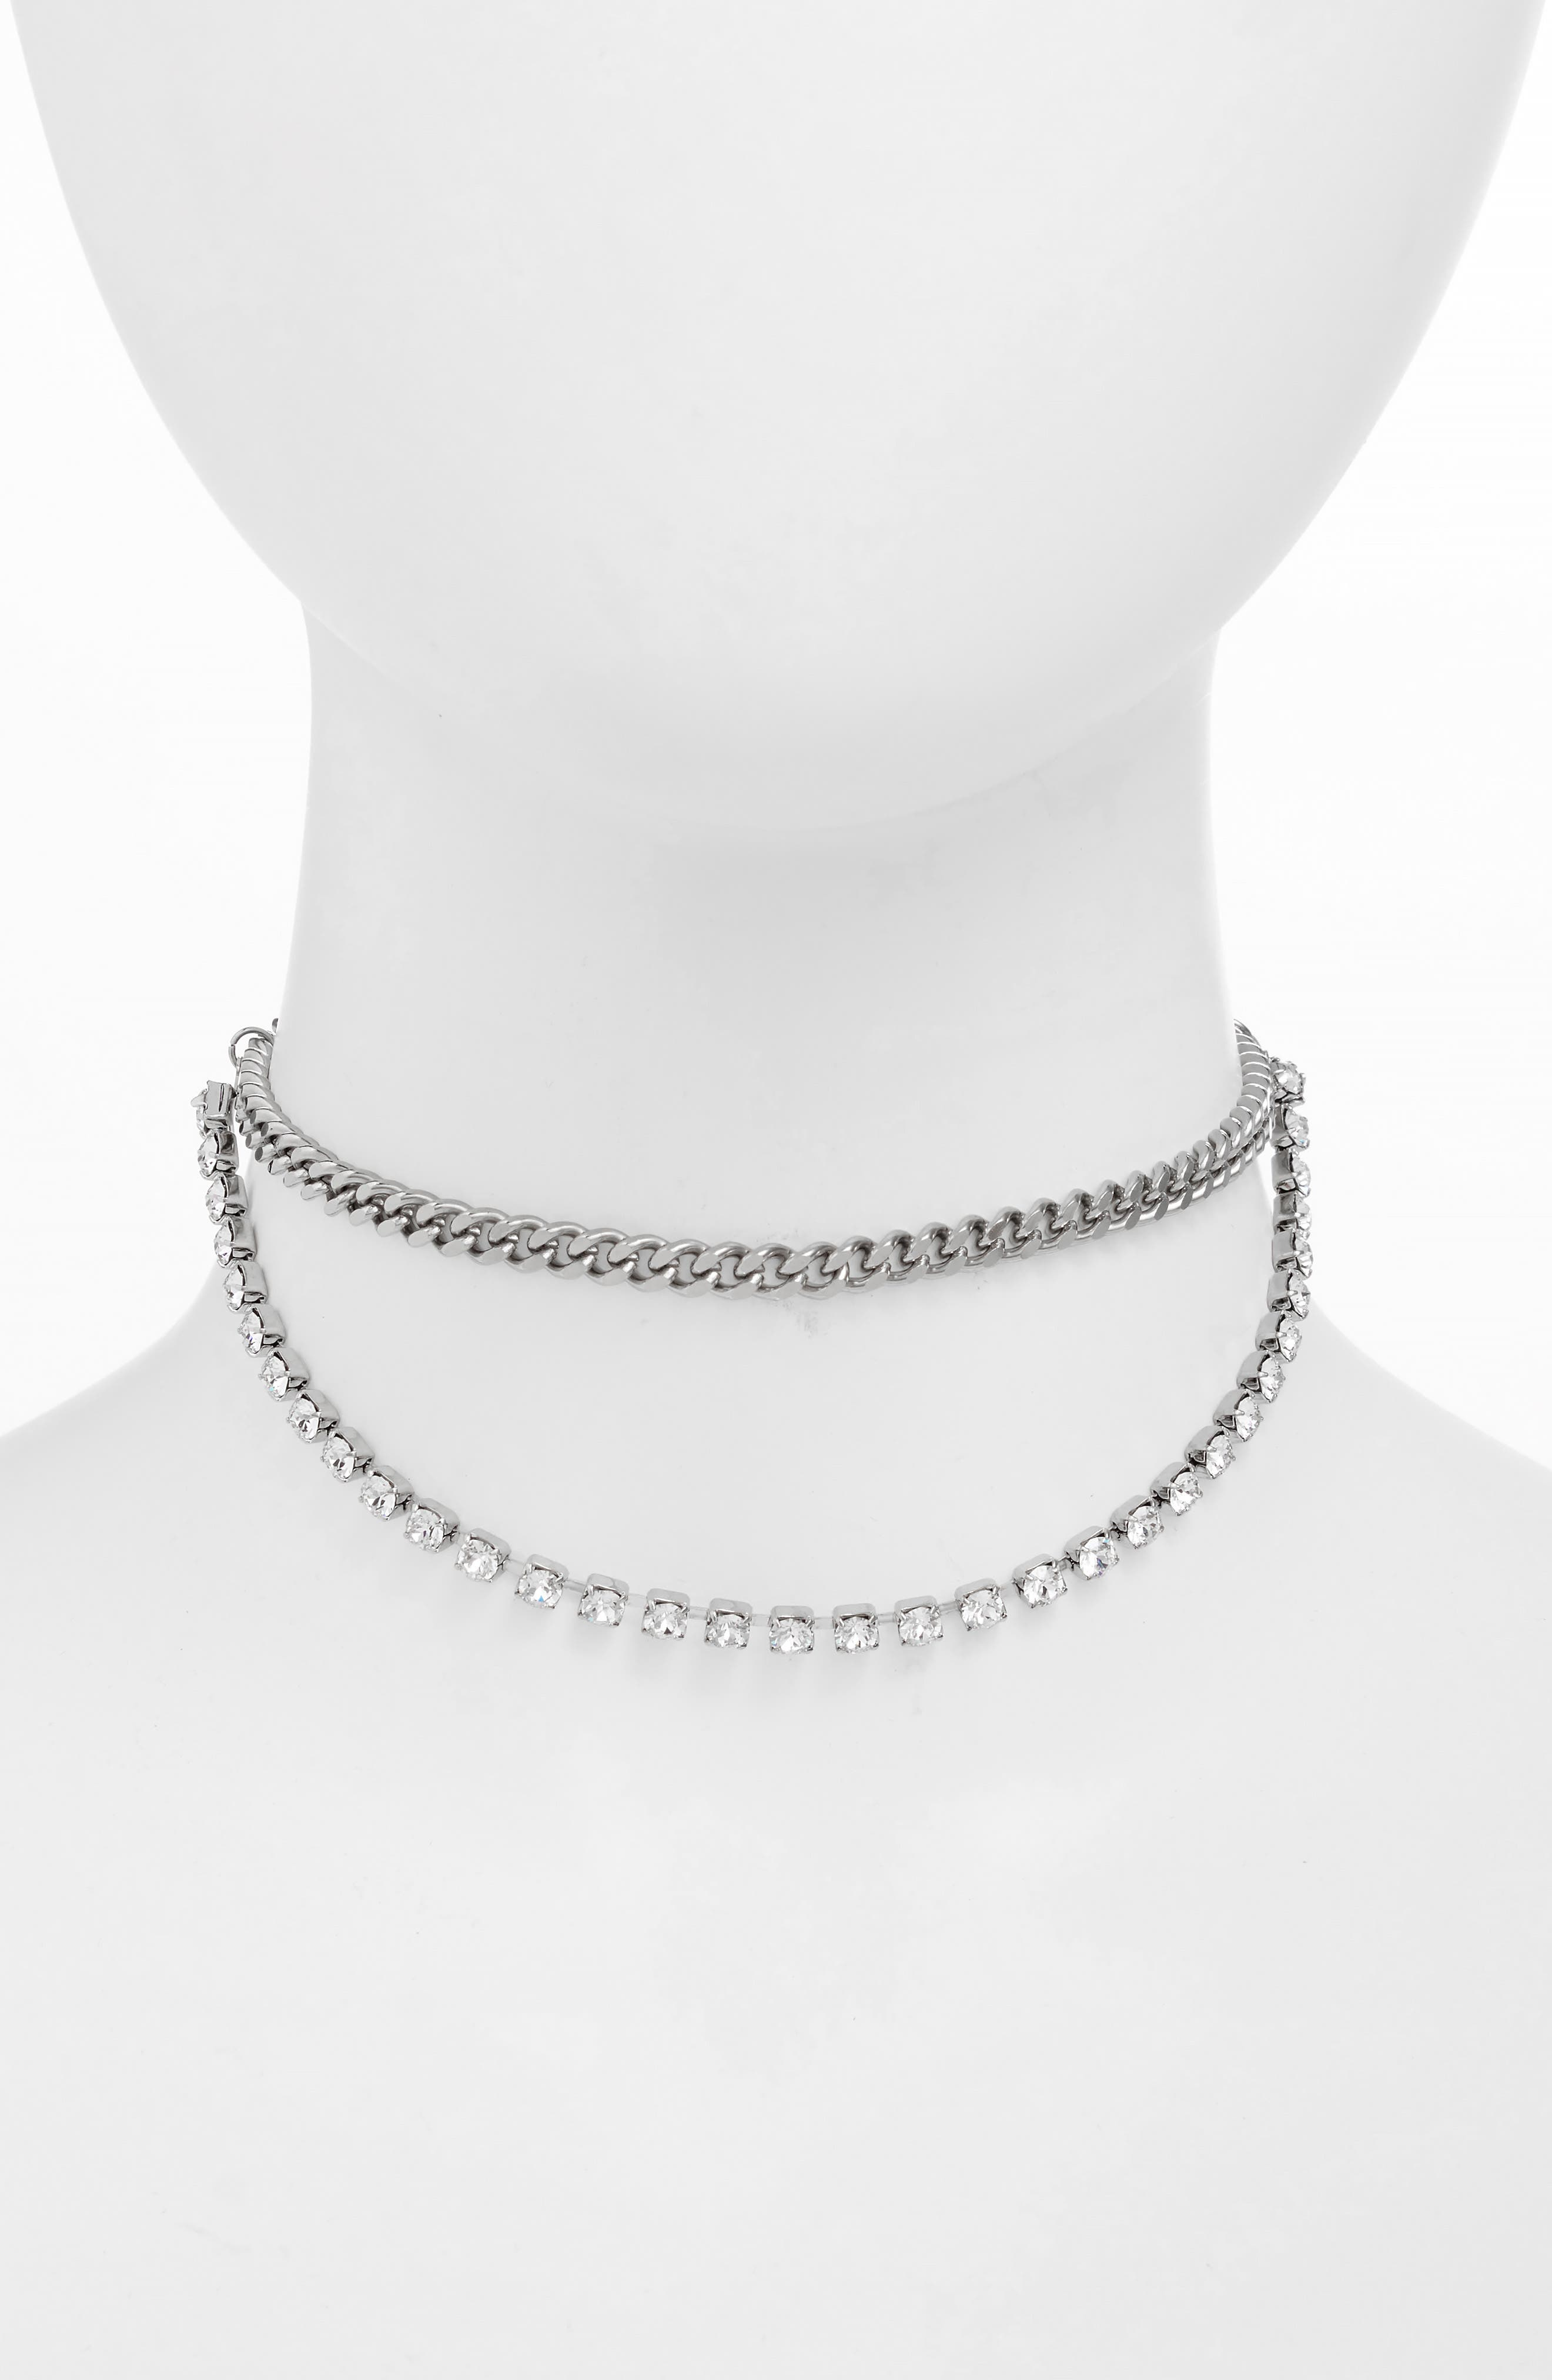 JUSTINE CLENQUET Betty Layered Necklace in Black